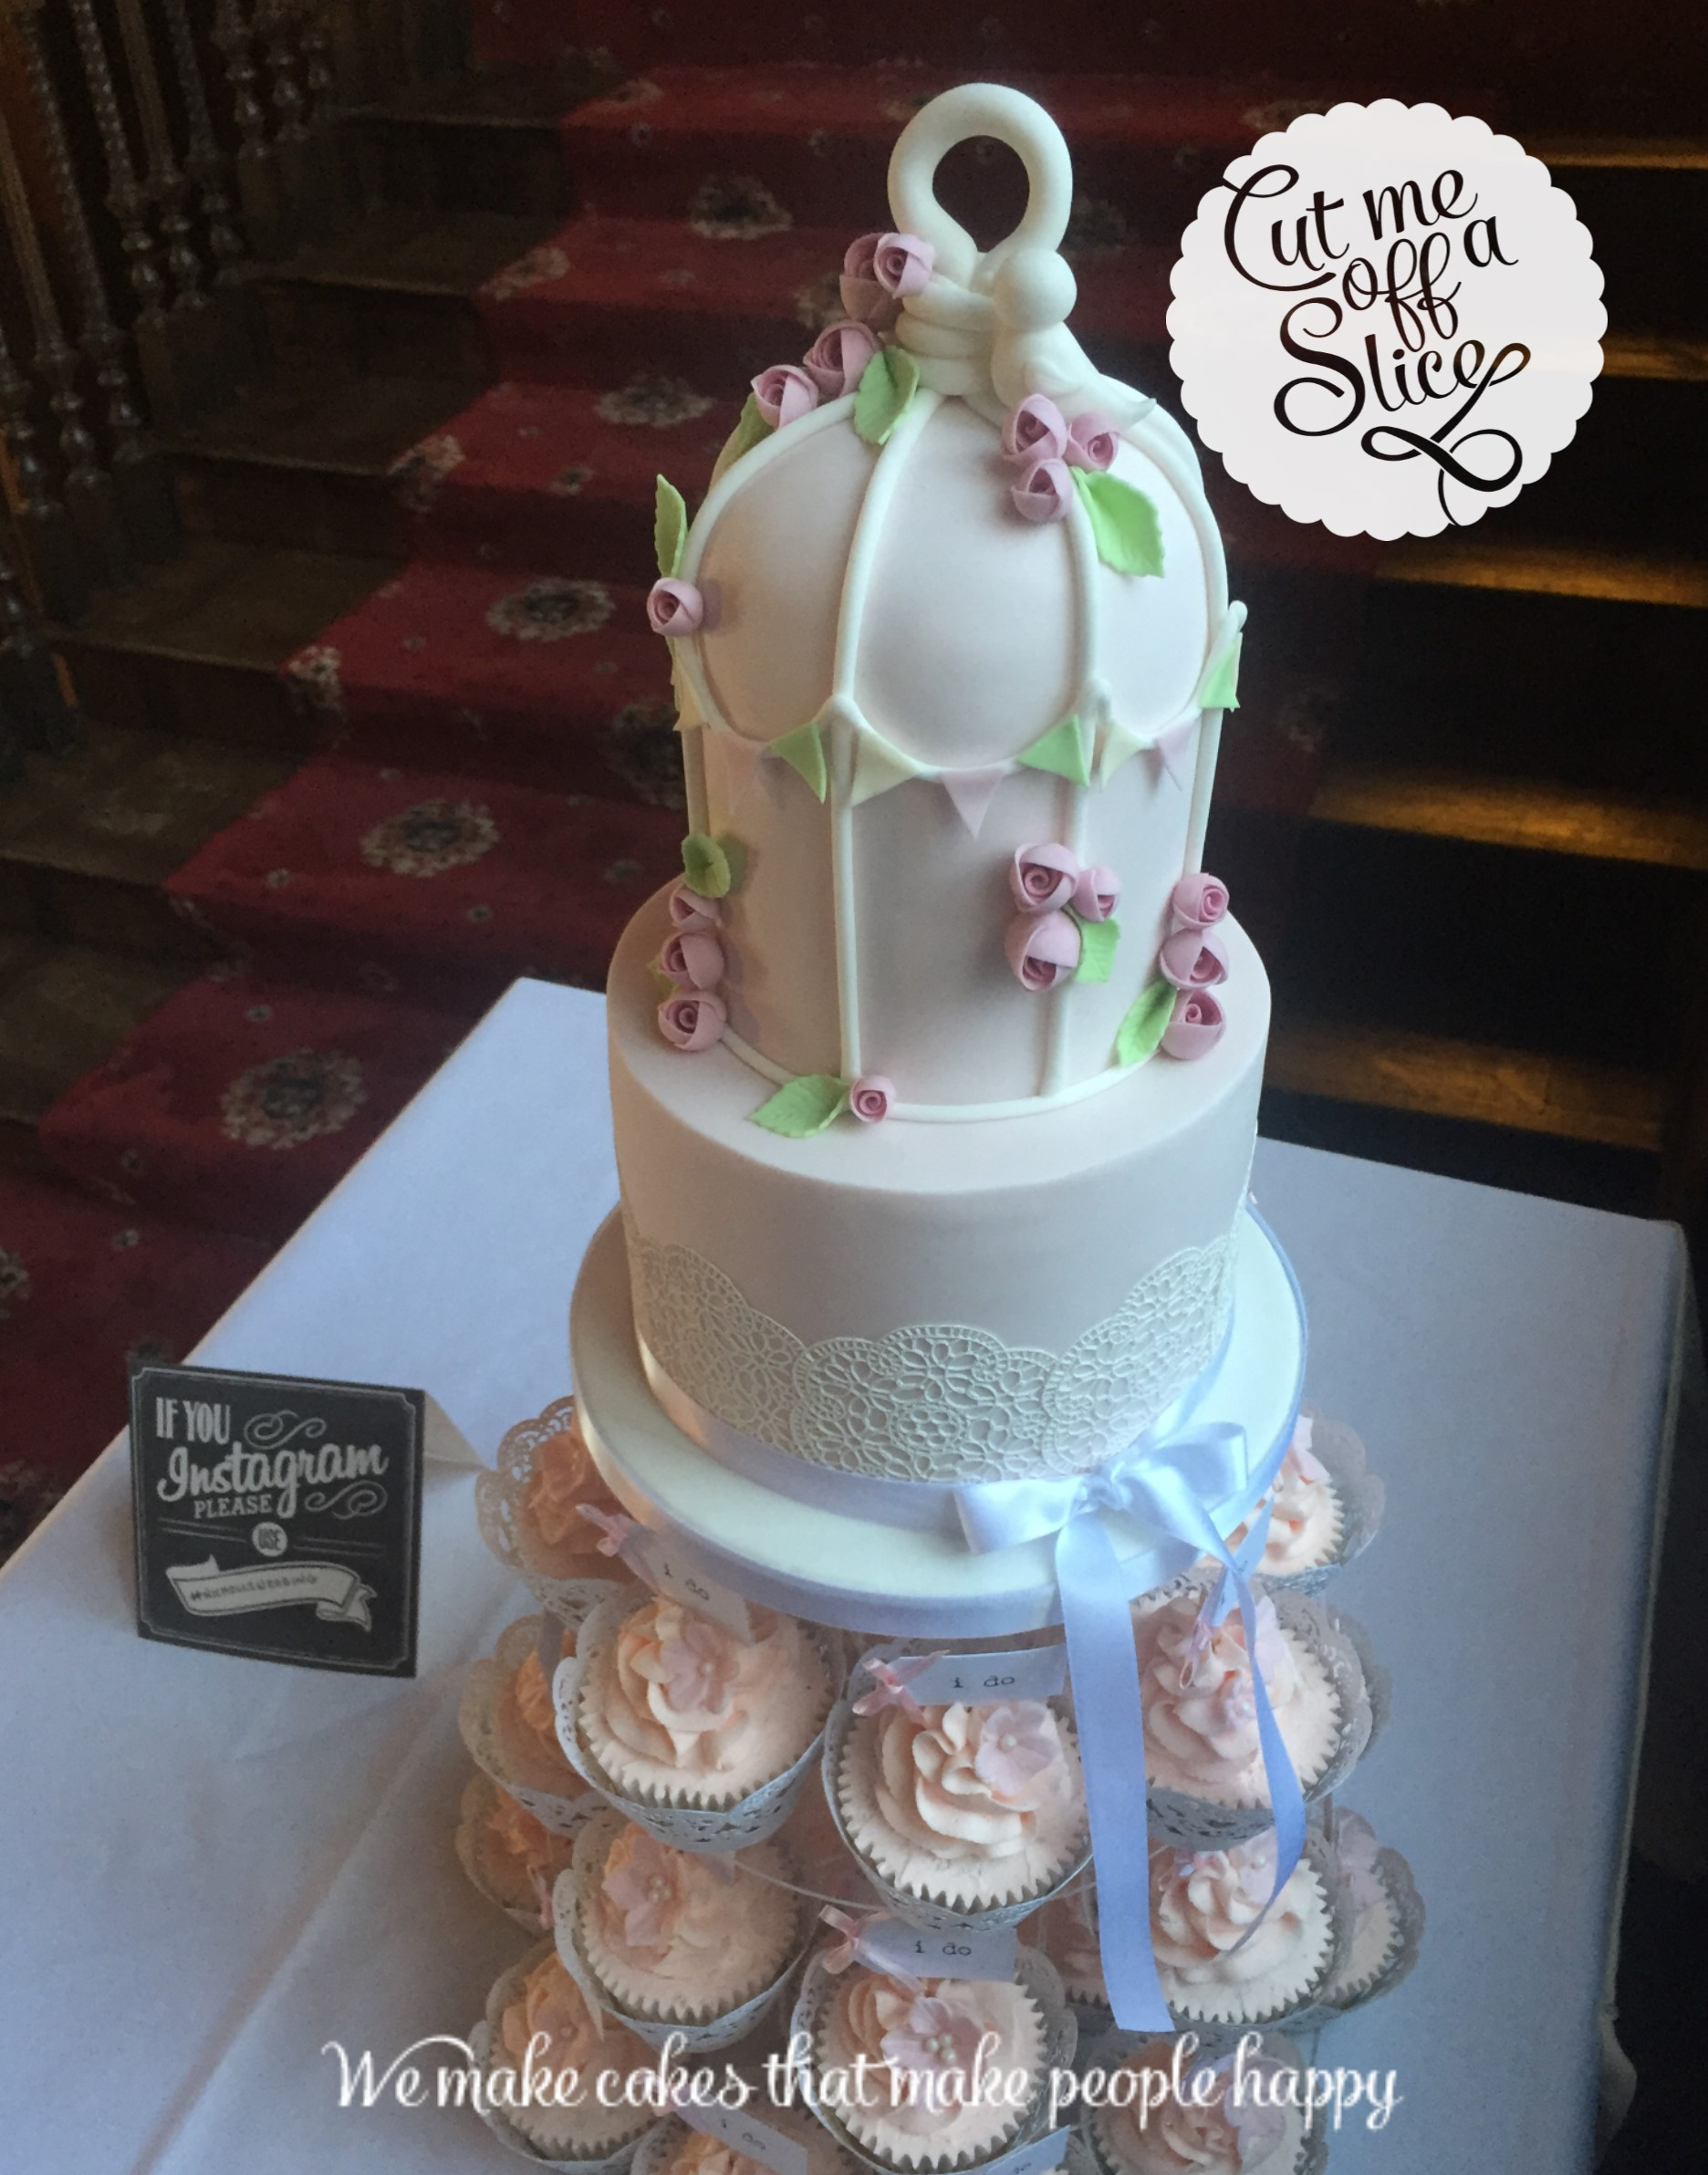 wedding cakes newquay cornwall cup cakes wedding cakes cut me a slice the cake 25086